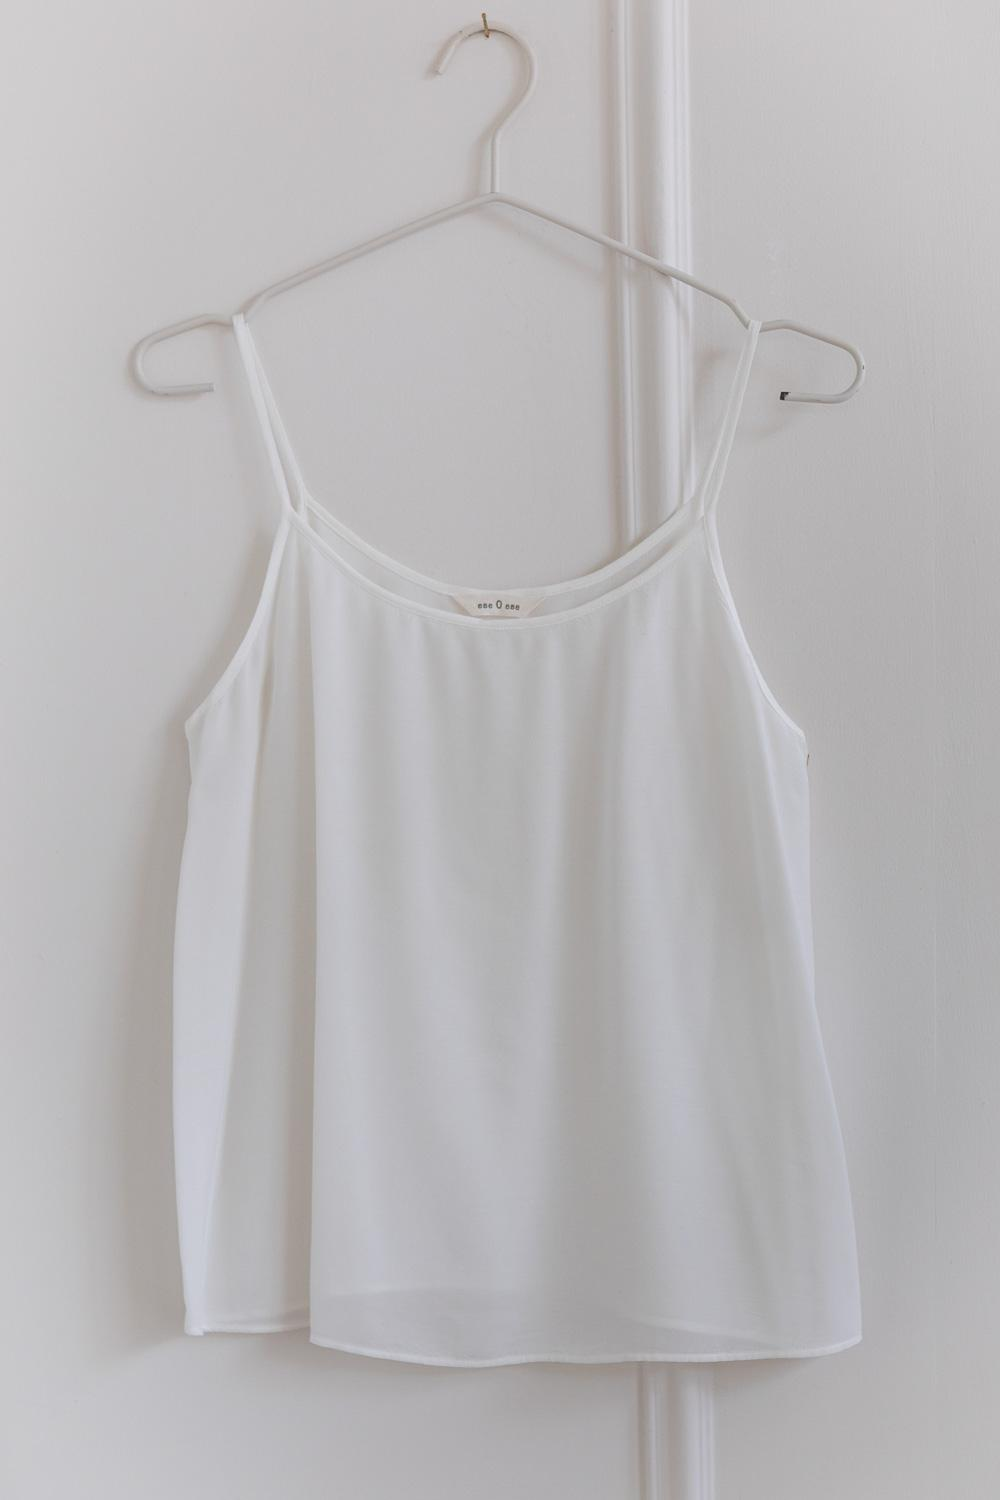 Top easy fluido off white